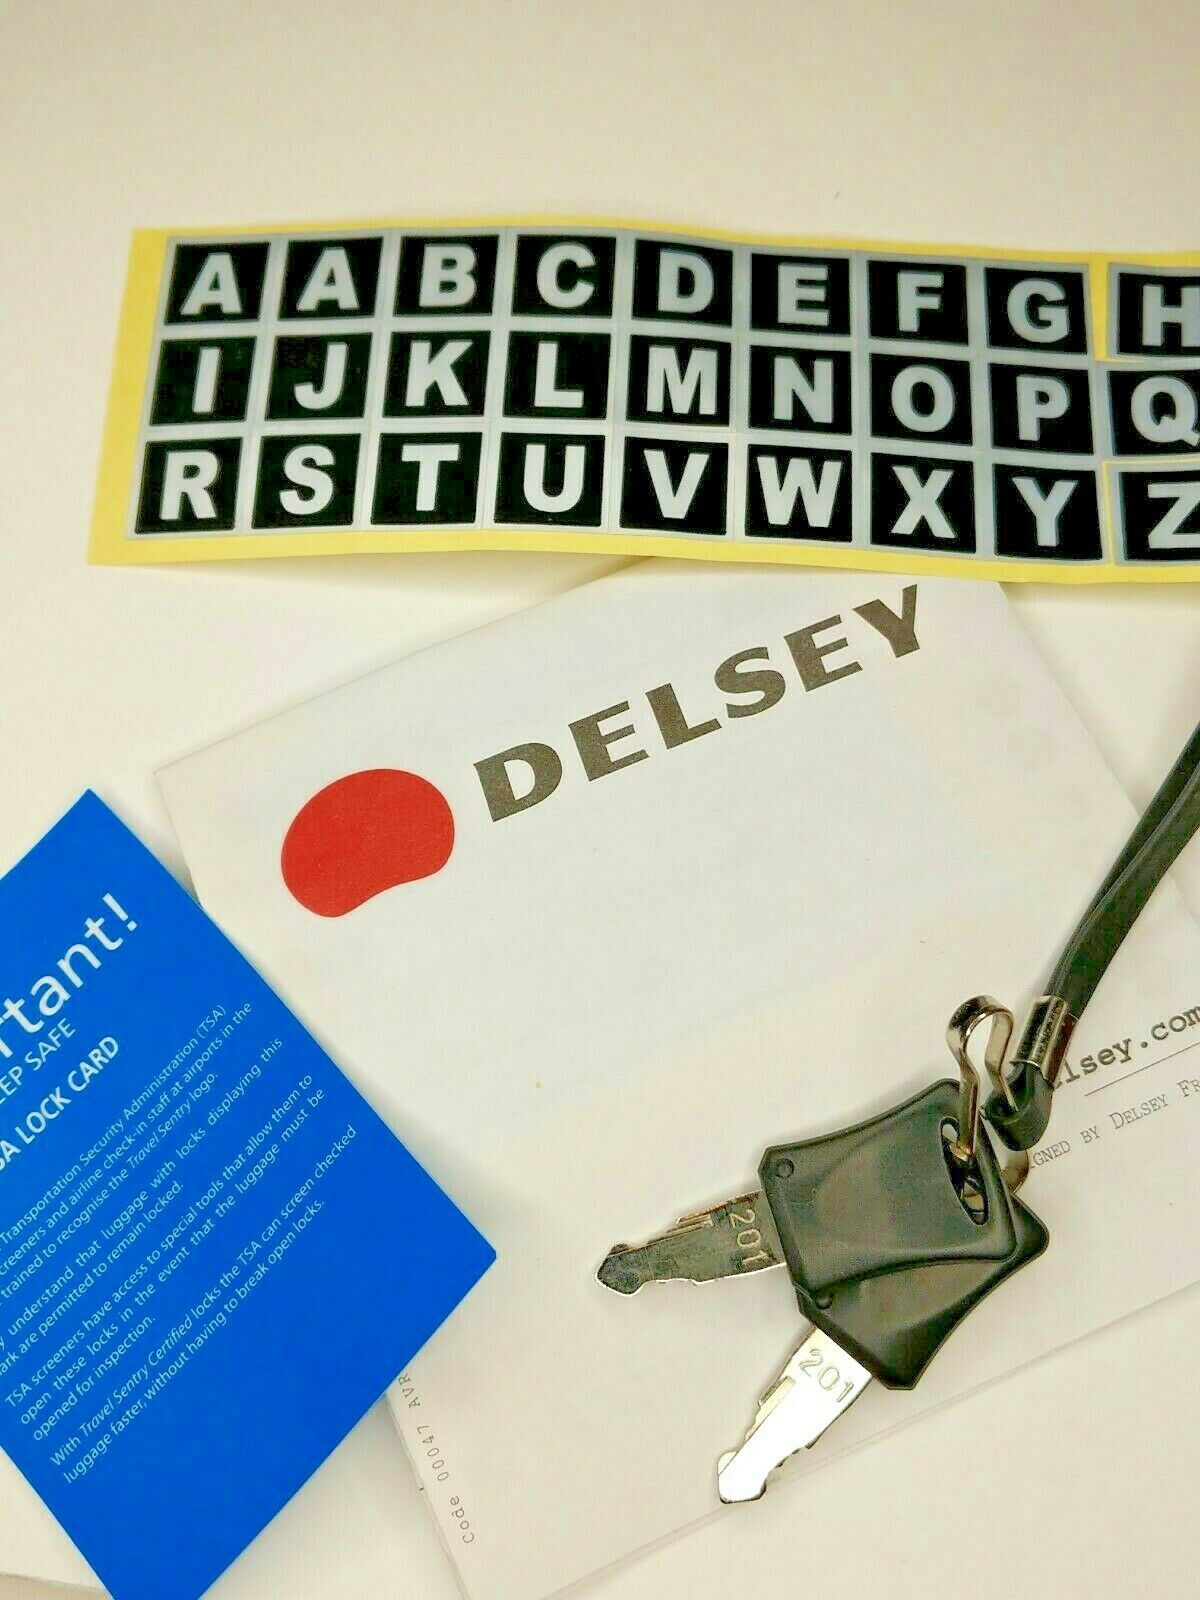 Delsey Accessories Luggage Keys Owners Manual Monogram Letters - $5.00